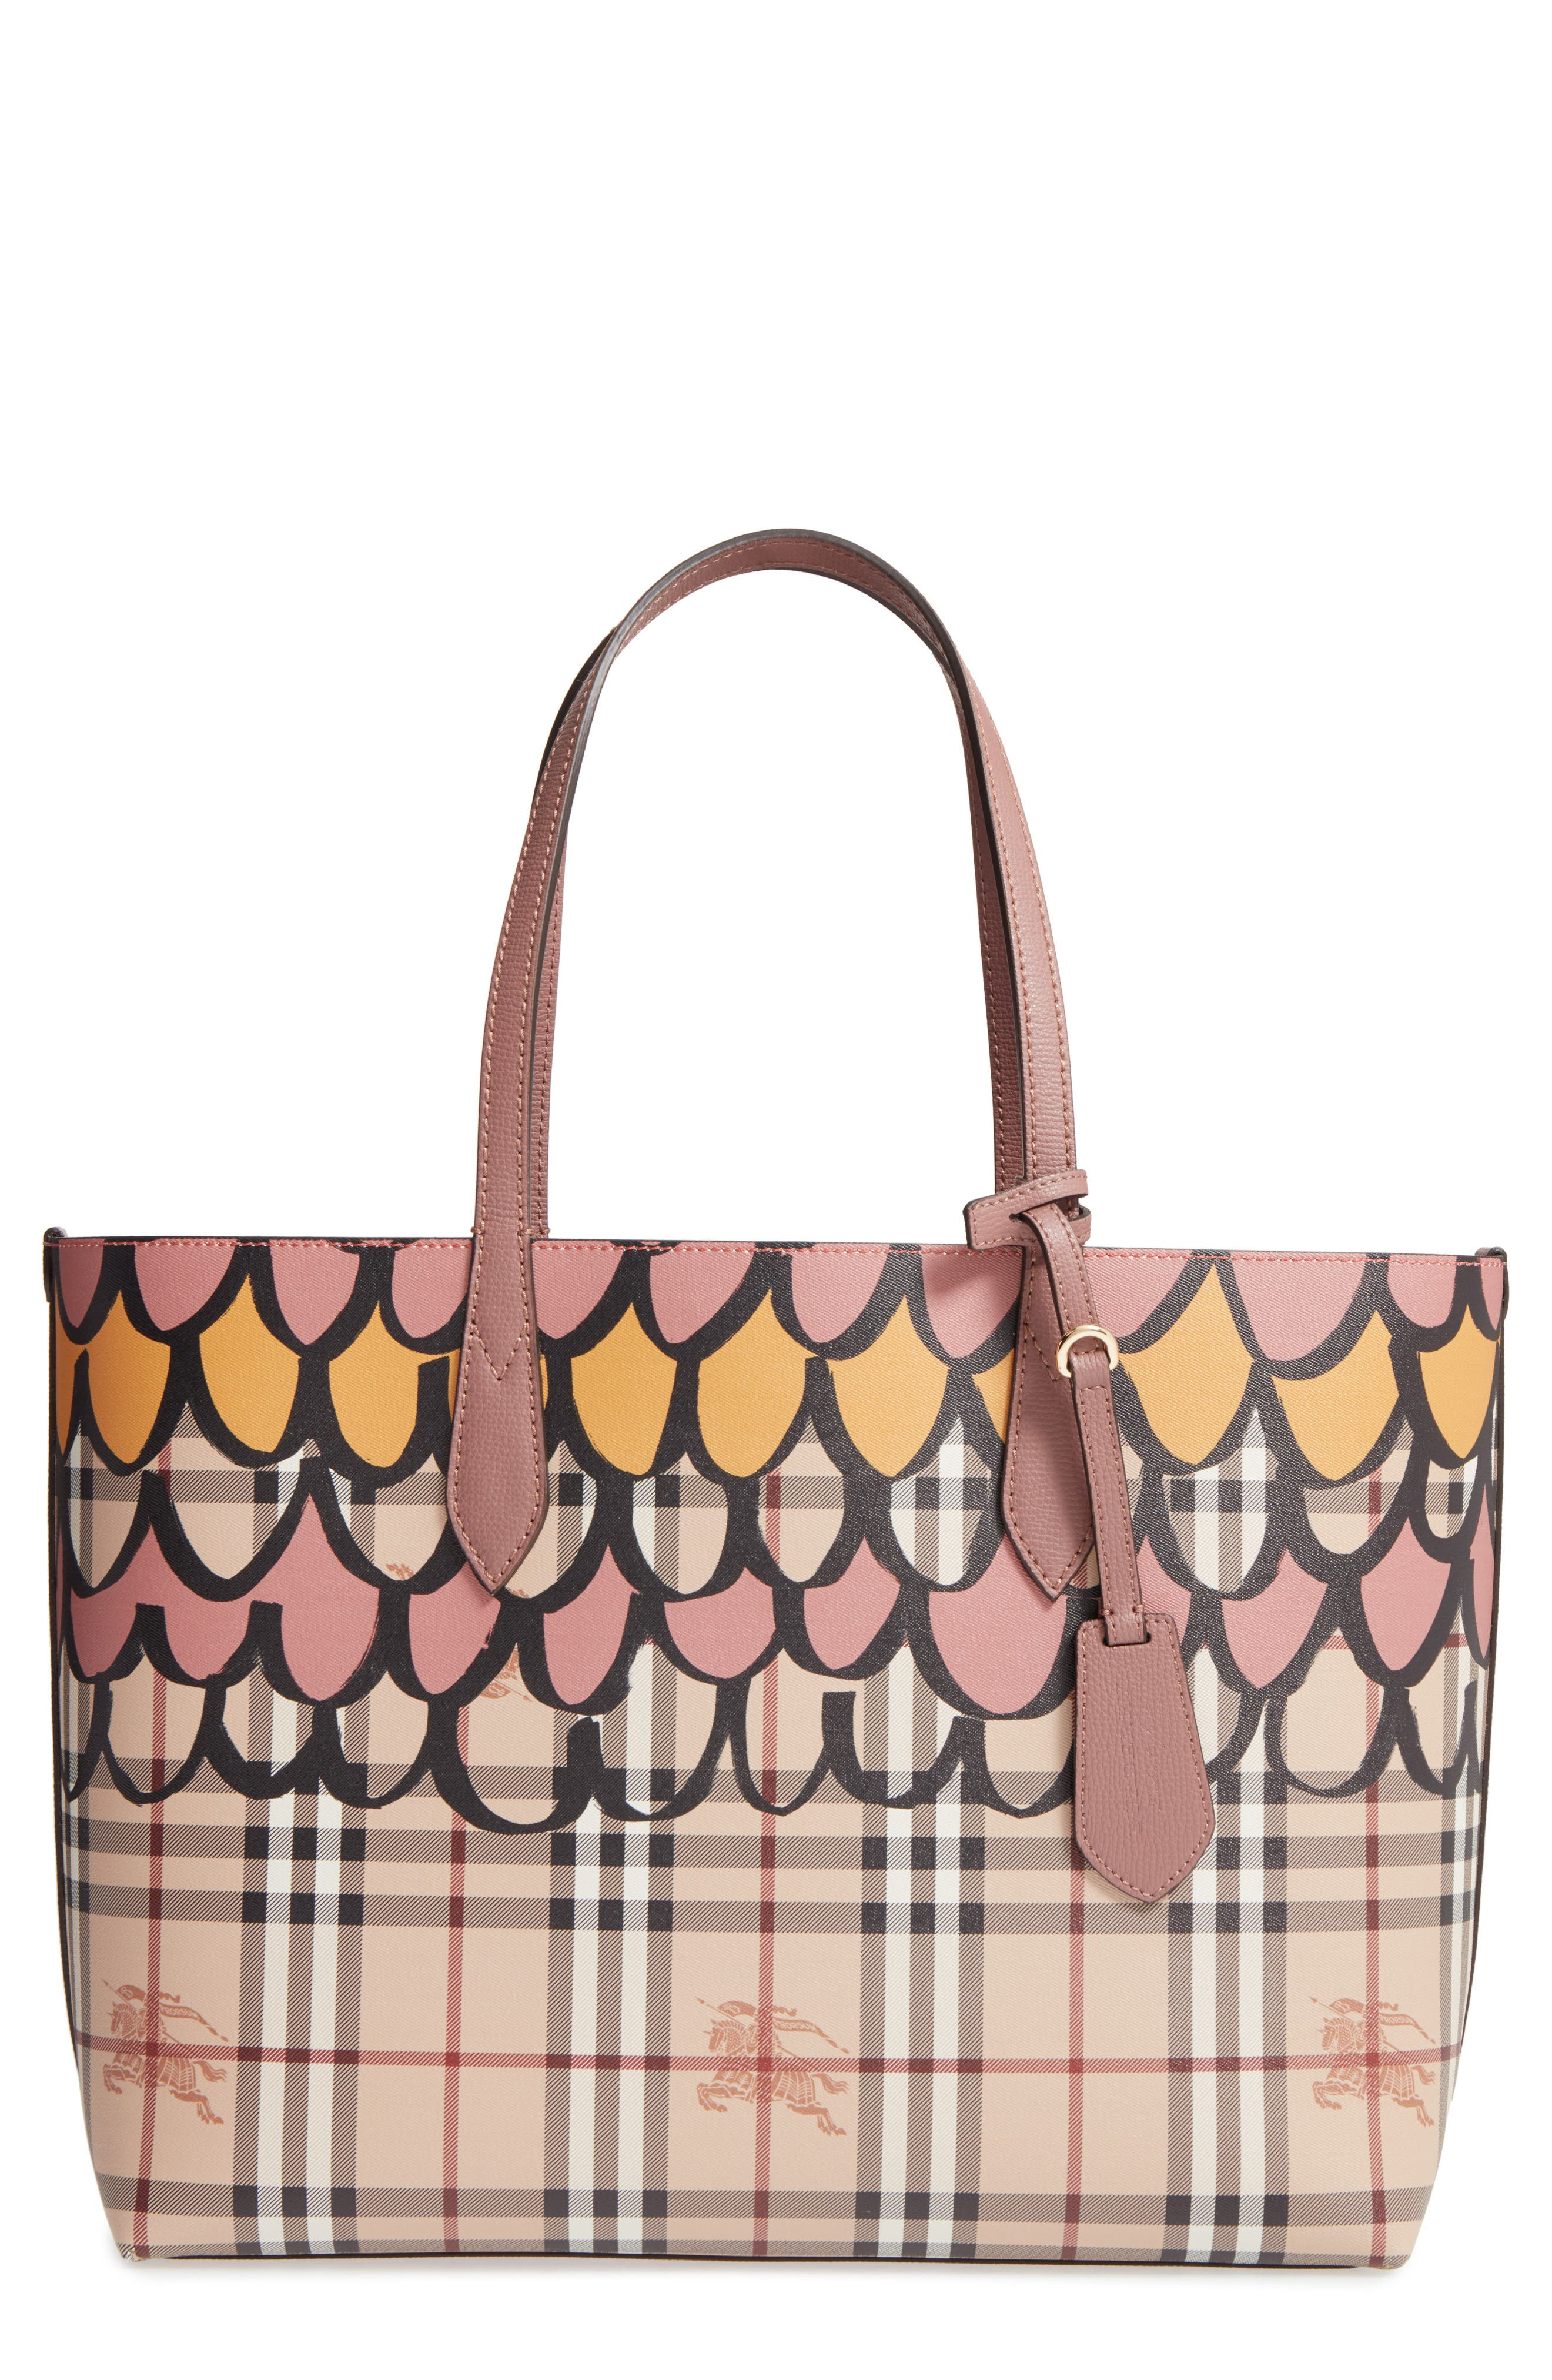 Burberry Medium Lavenby Reversible Tote